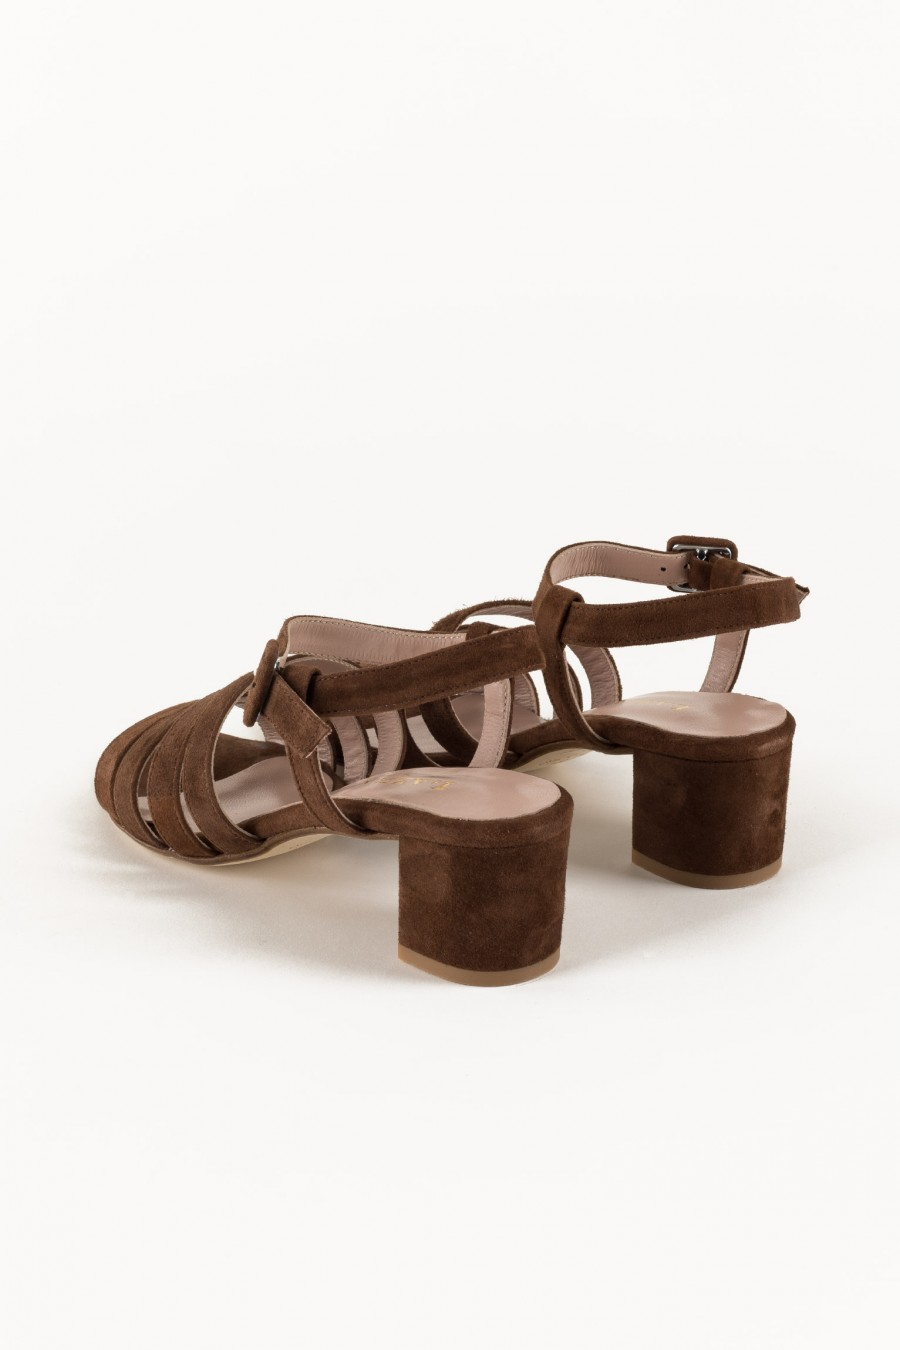 Brown sandals with list